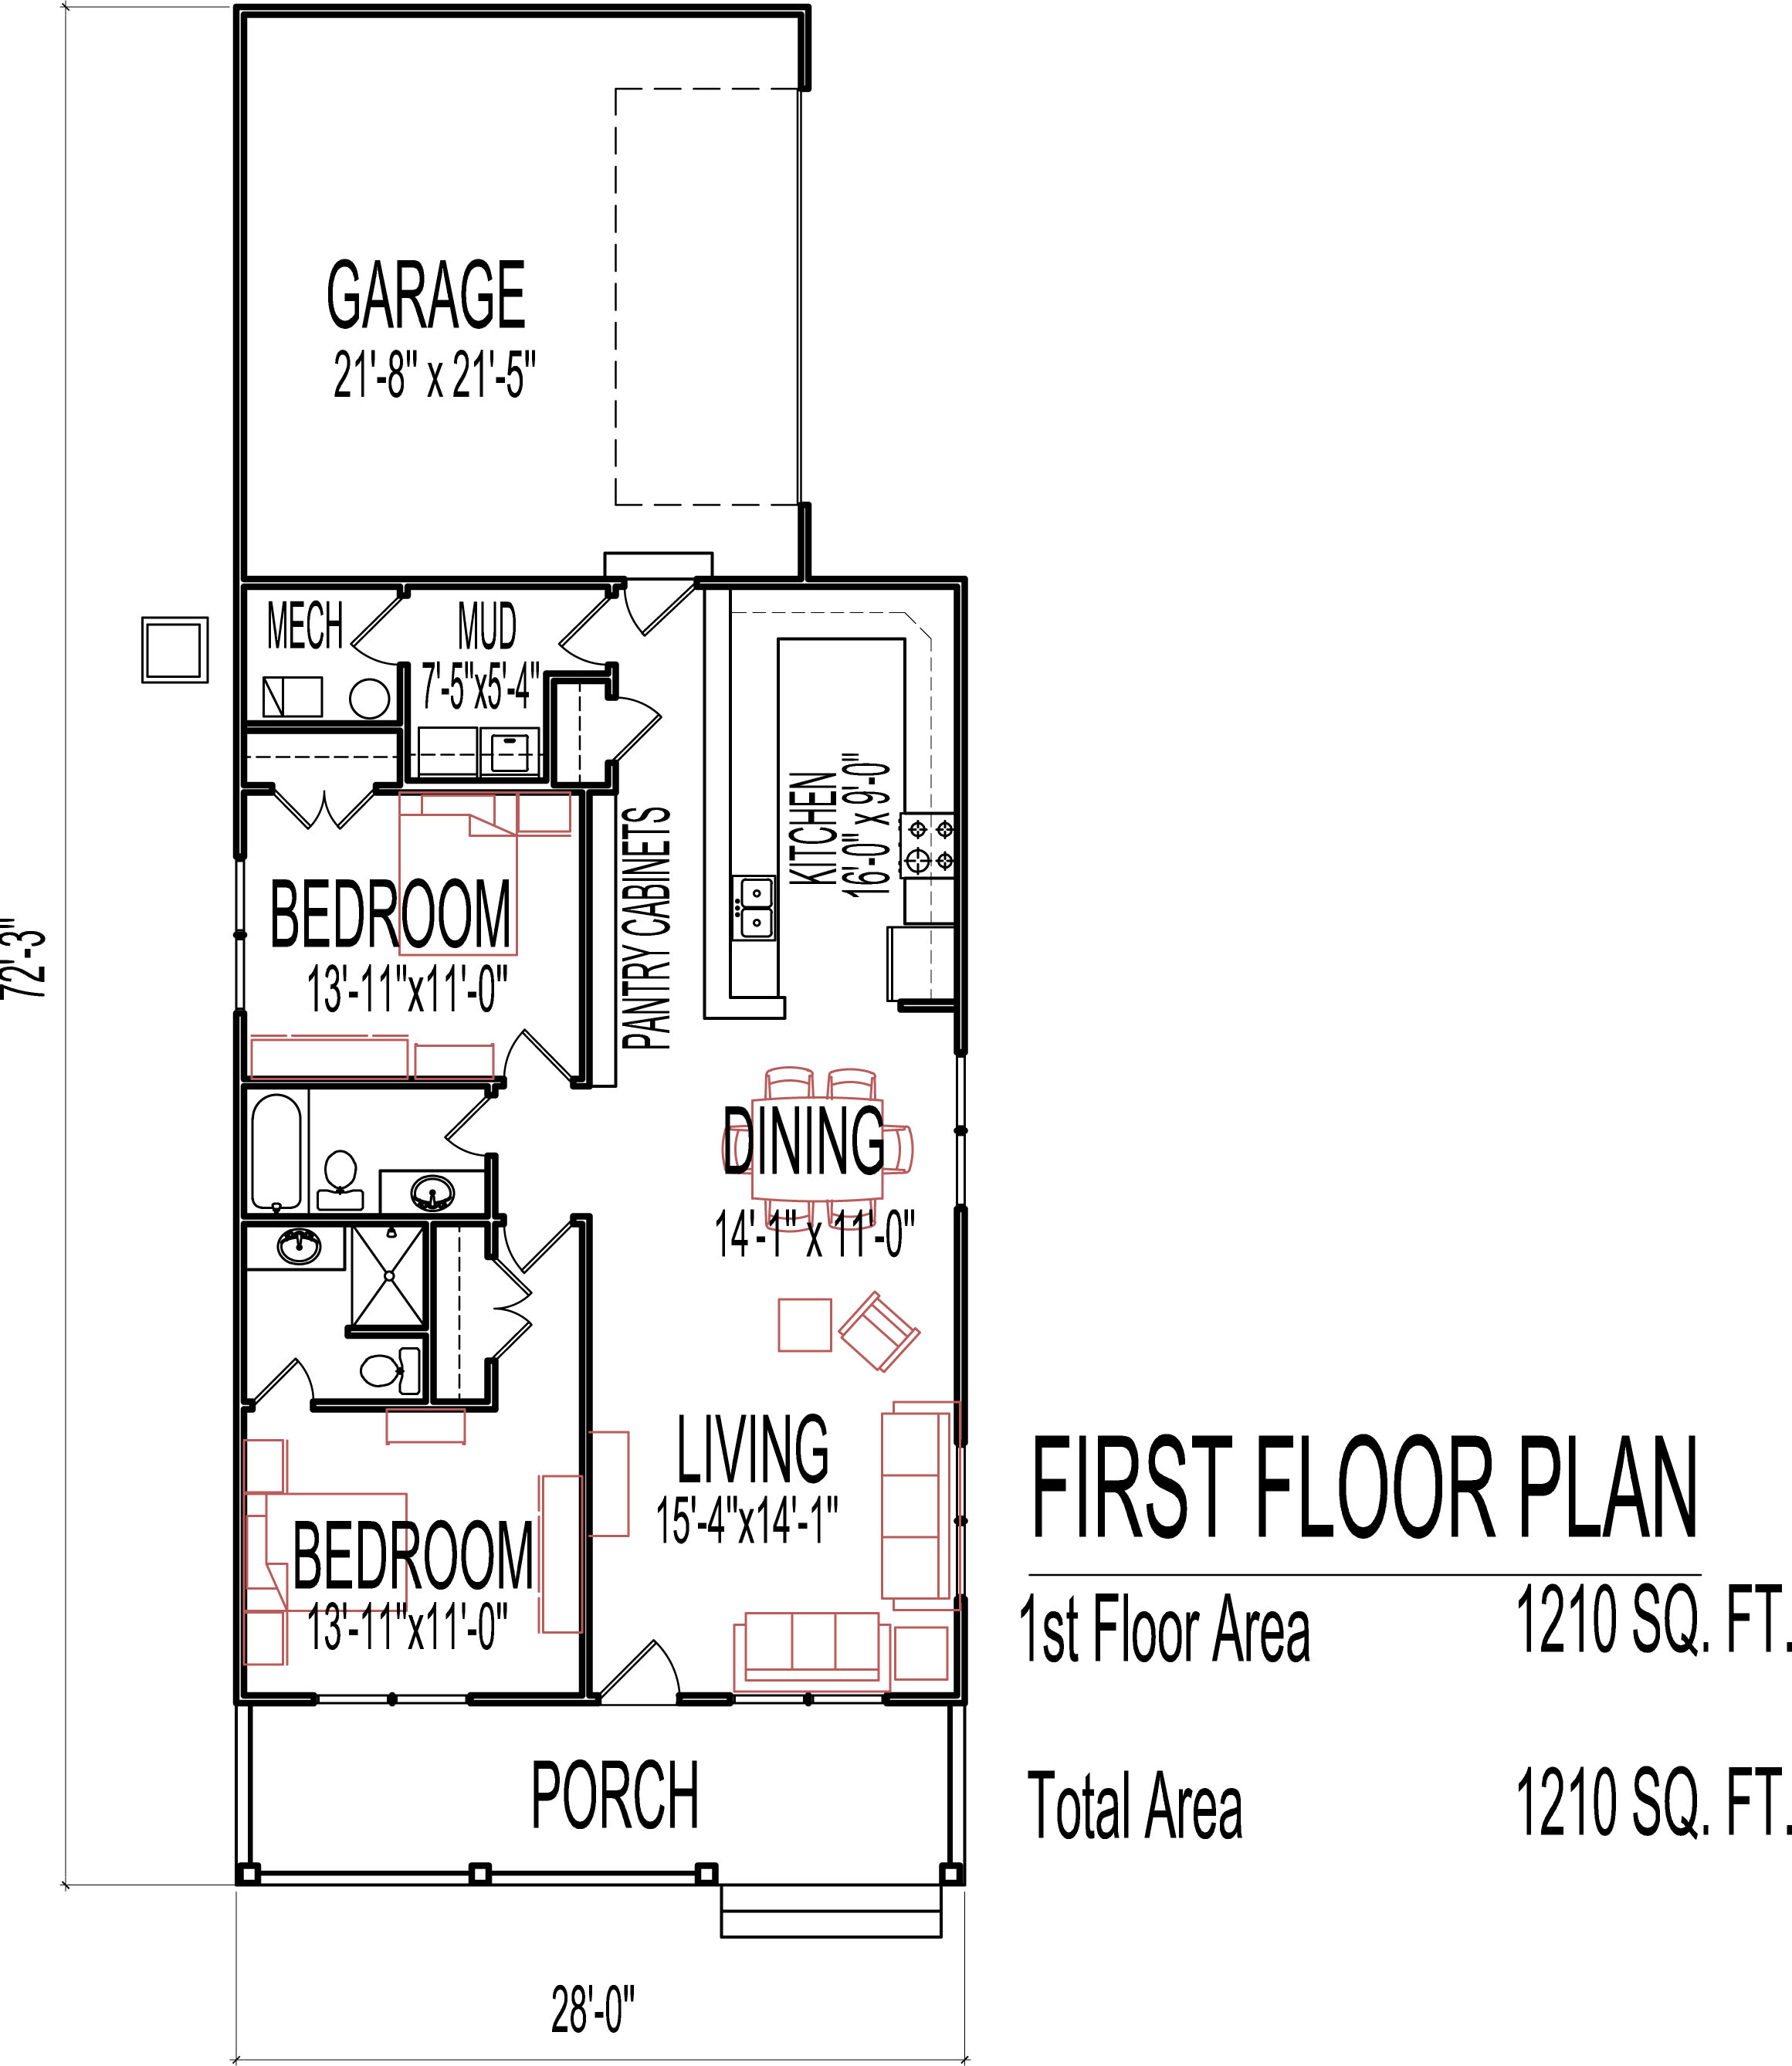 Small Two Bedroom House Plans Low Cost 1200 Sq Ft one Story ... on